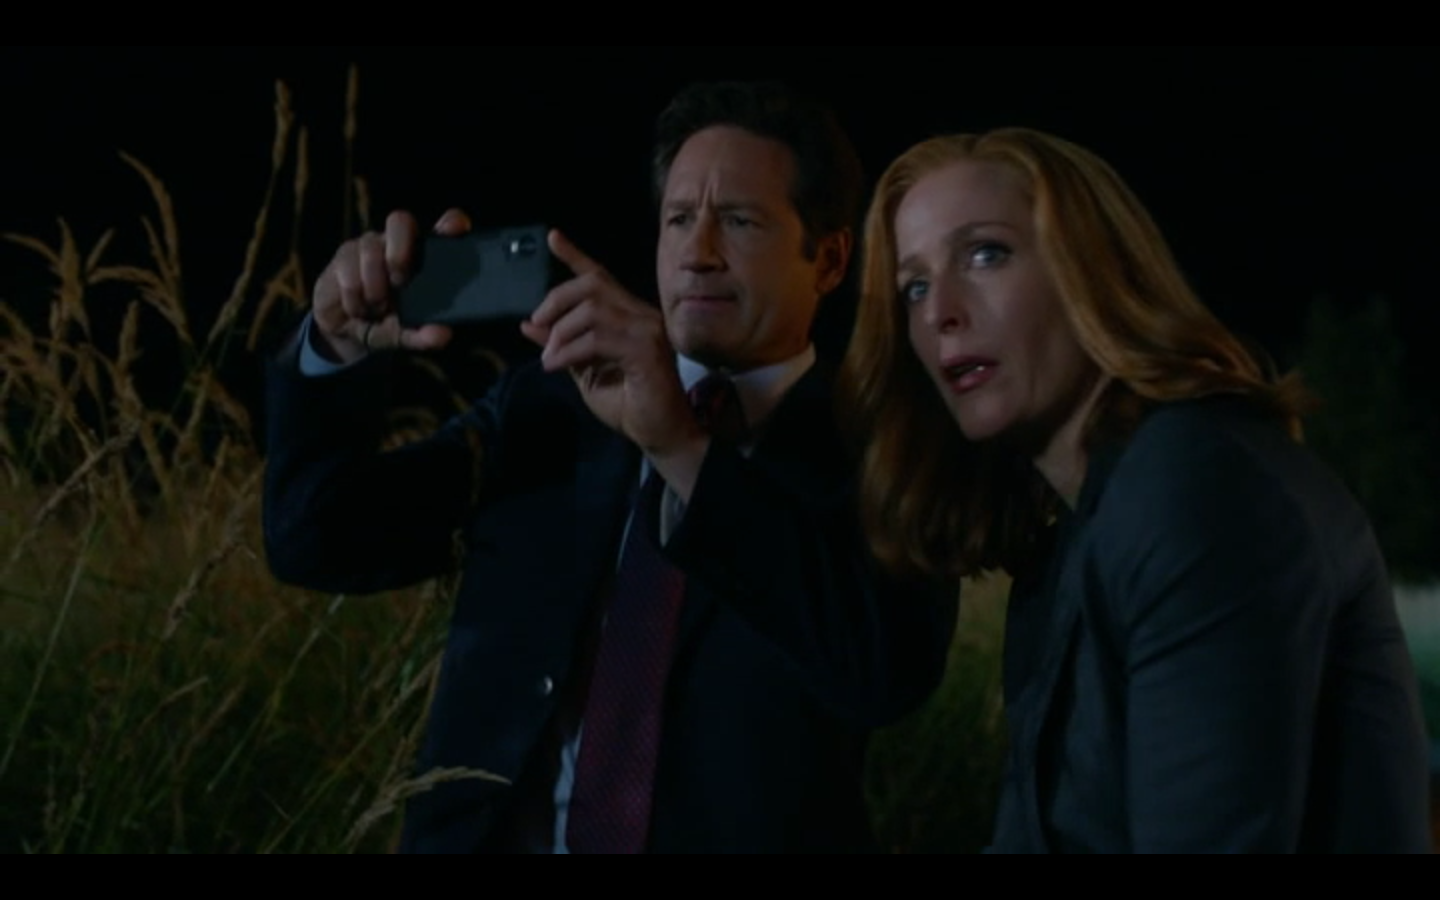 mulder and scully meet the were monster writer